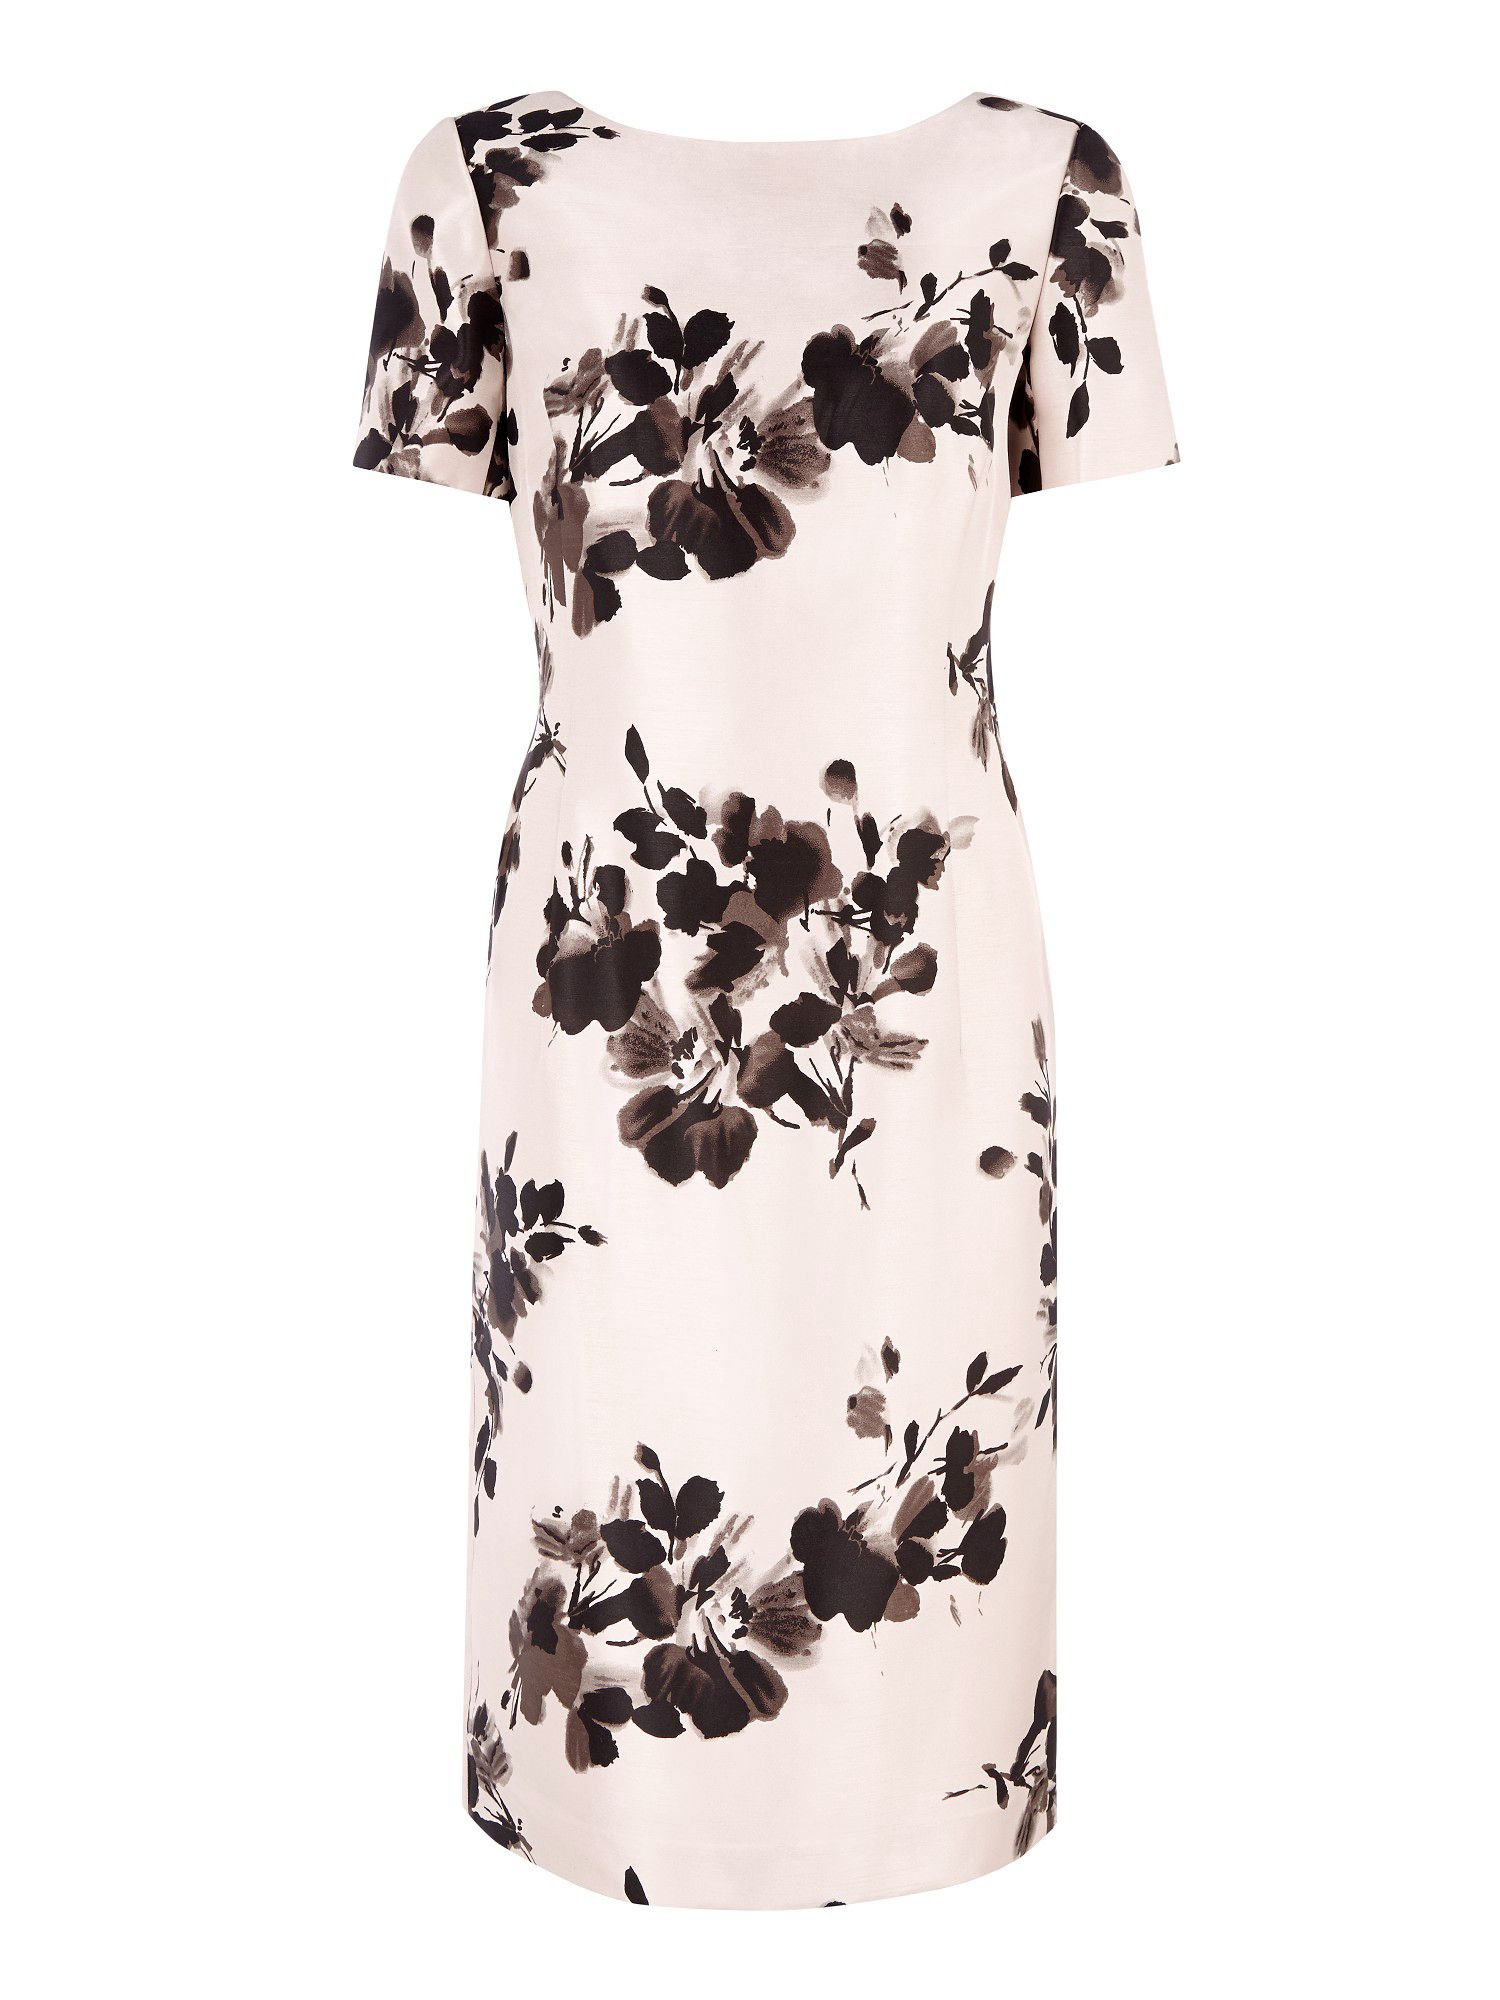 Soft floral print shift dress